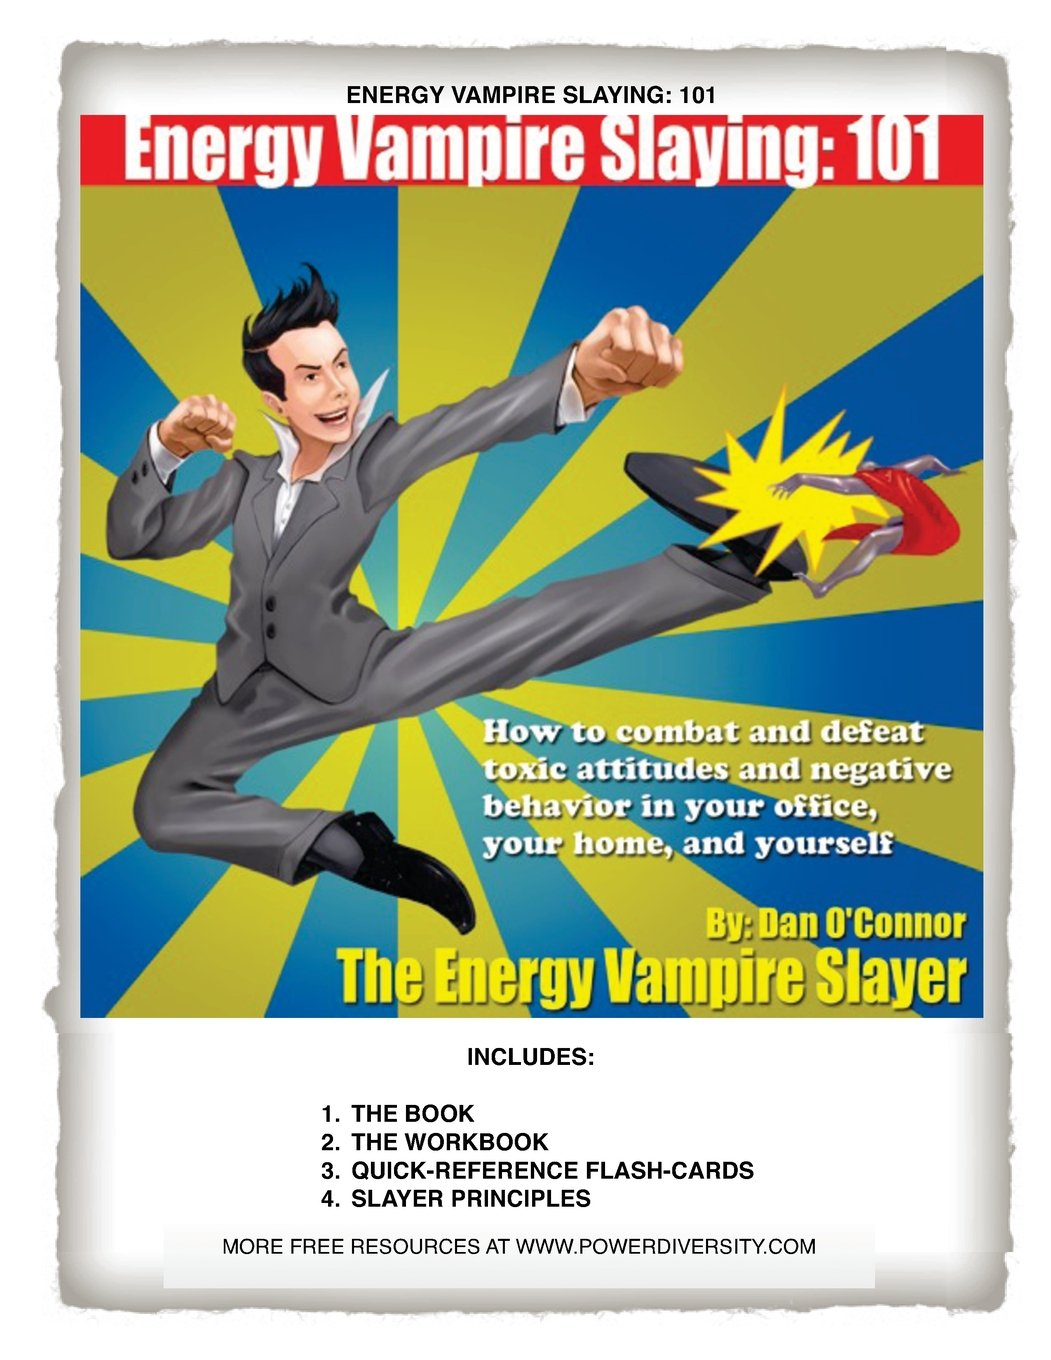 Energy Vampire Slaying: 101: How to combat negativity and toxic attitudes  in your office, in your home, and in yourself: Dan O'Connor: 9781463535087:  ...